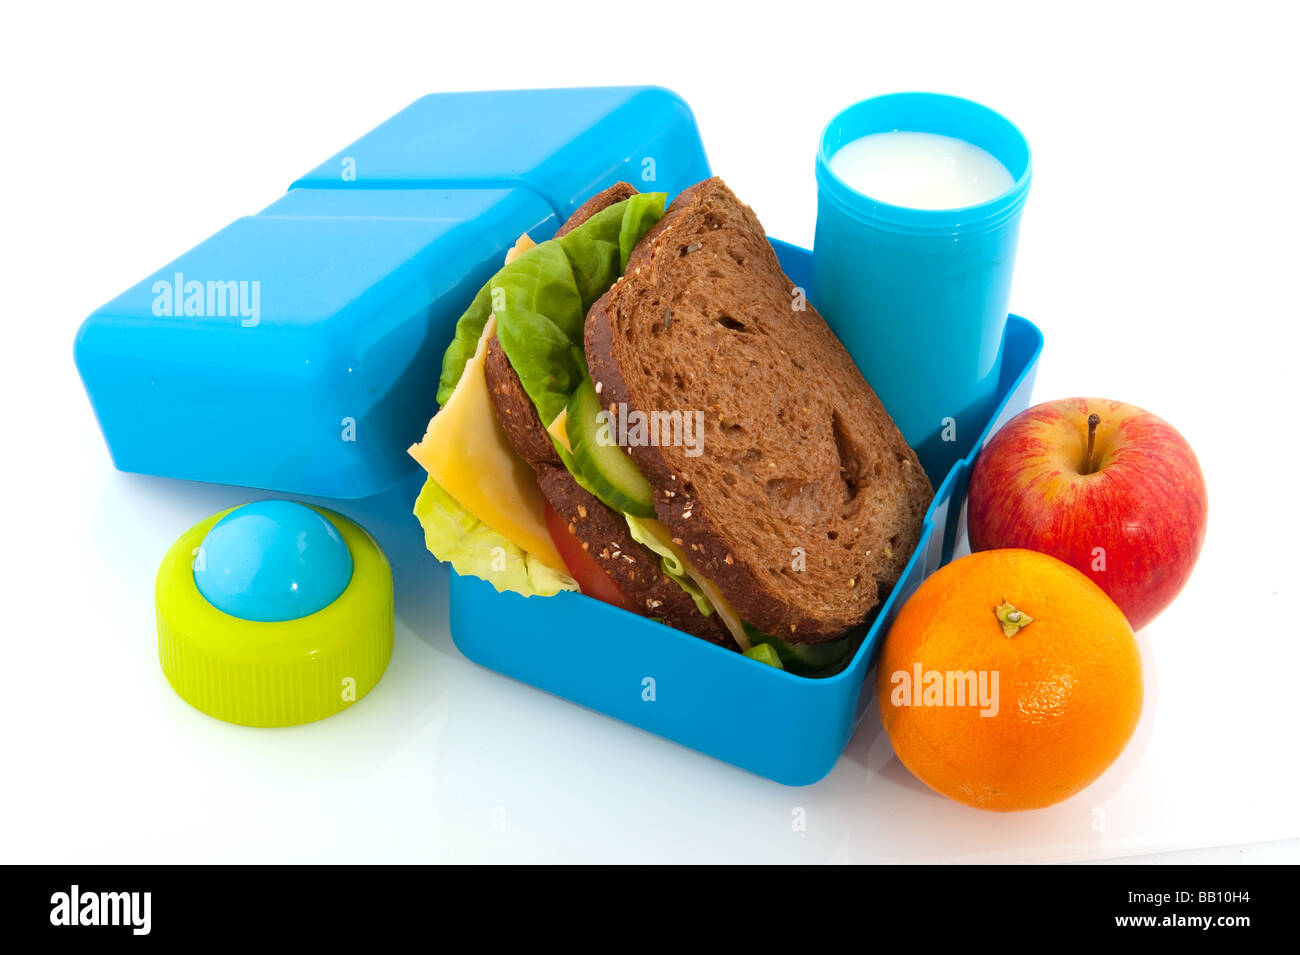 healthy-filled-lunch-box-with-whole-meal